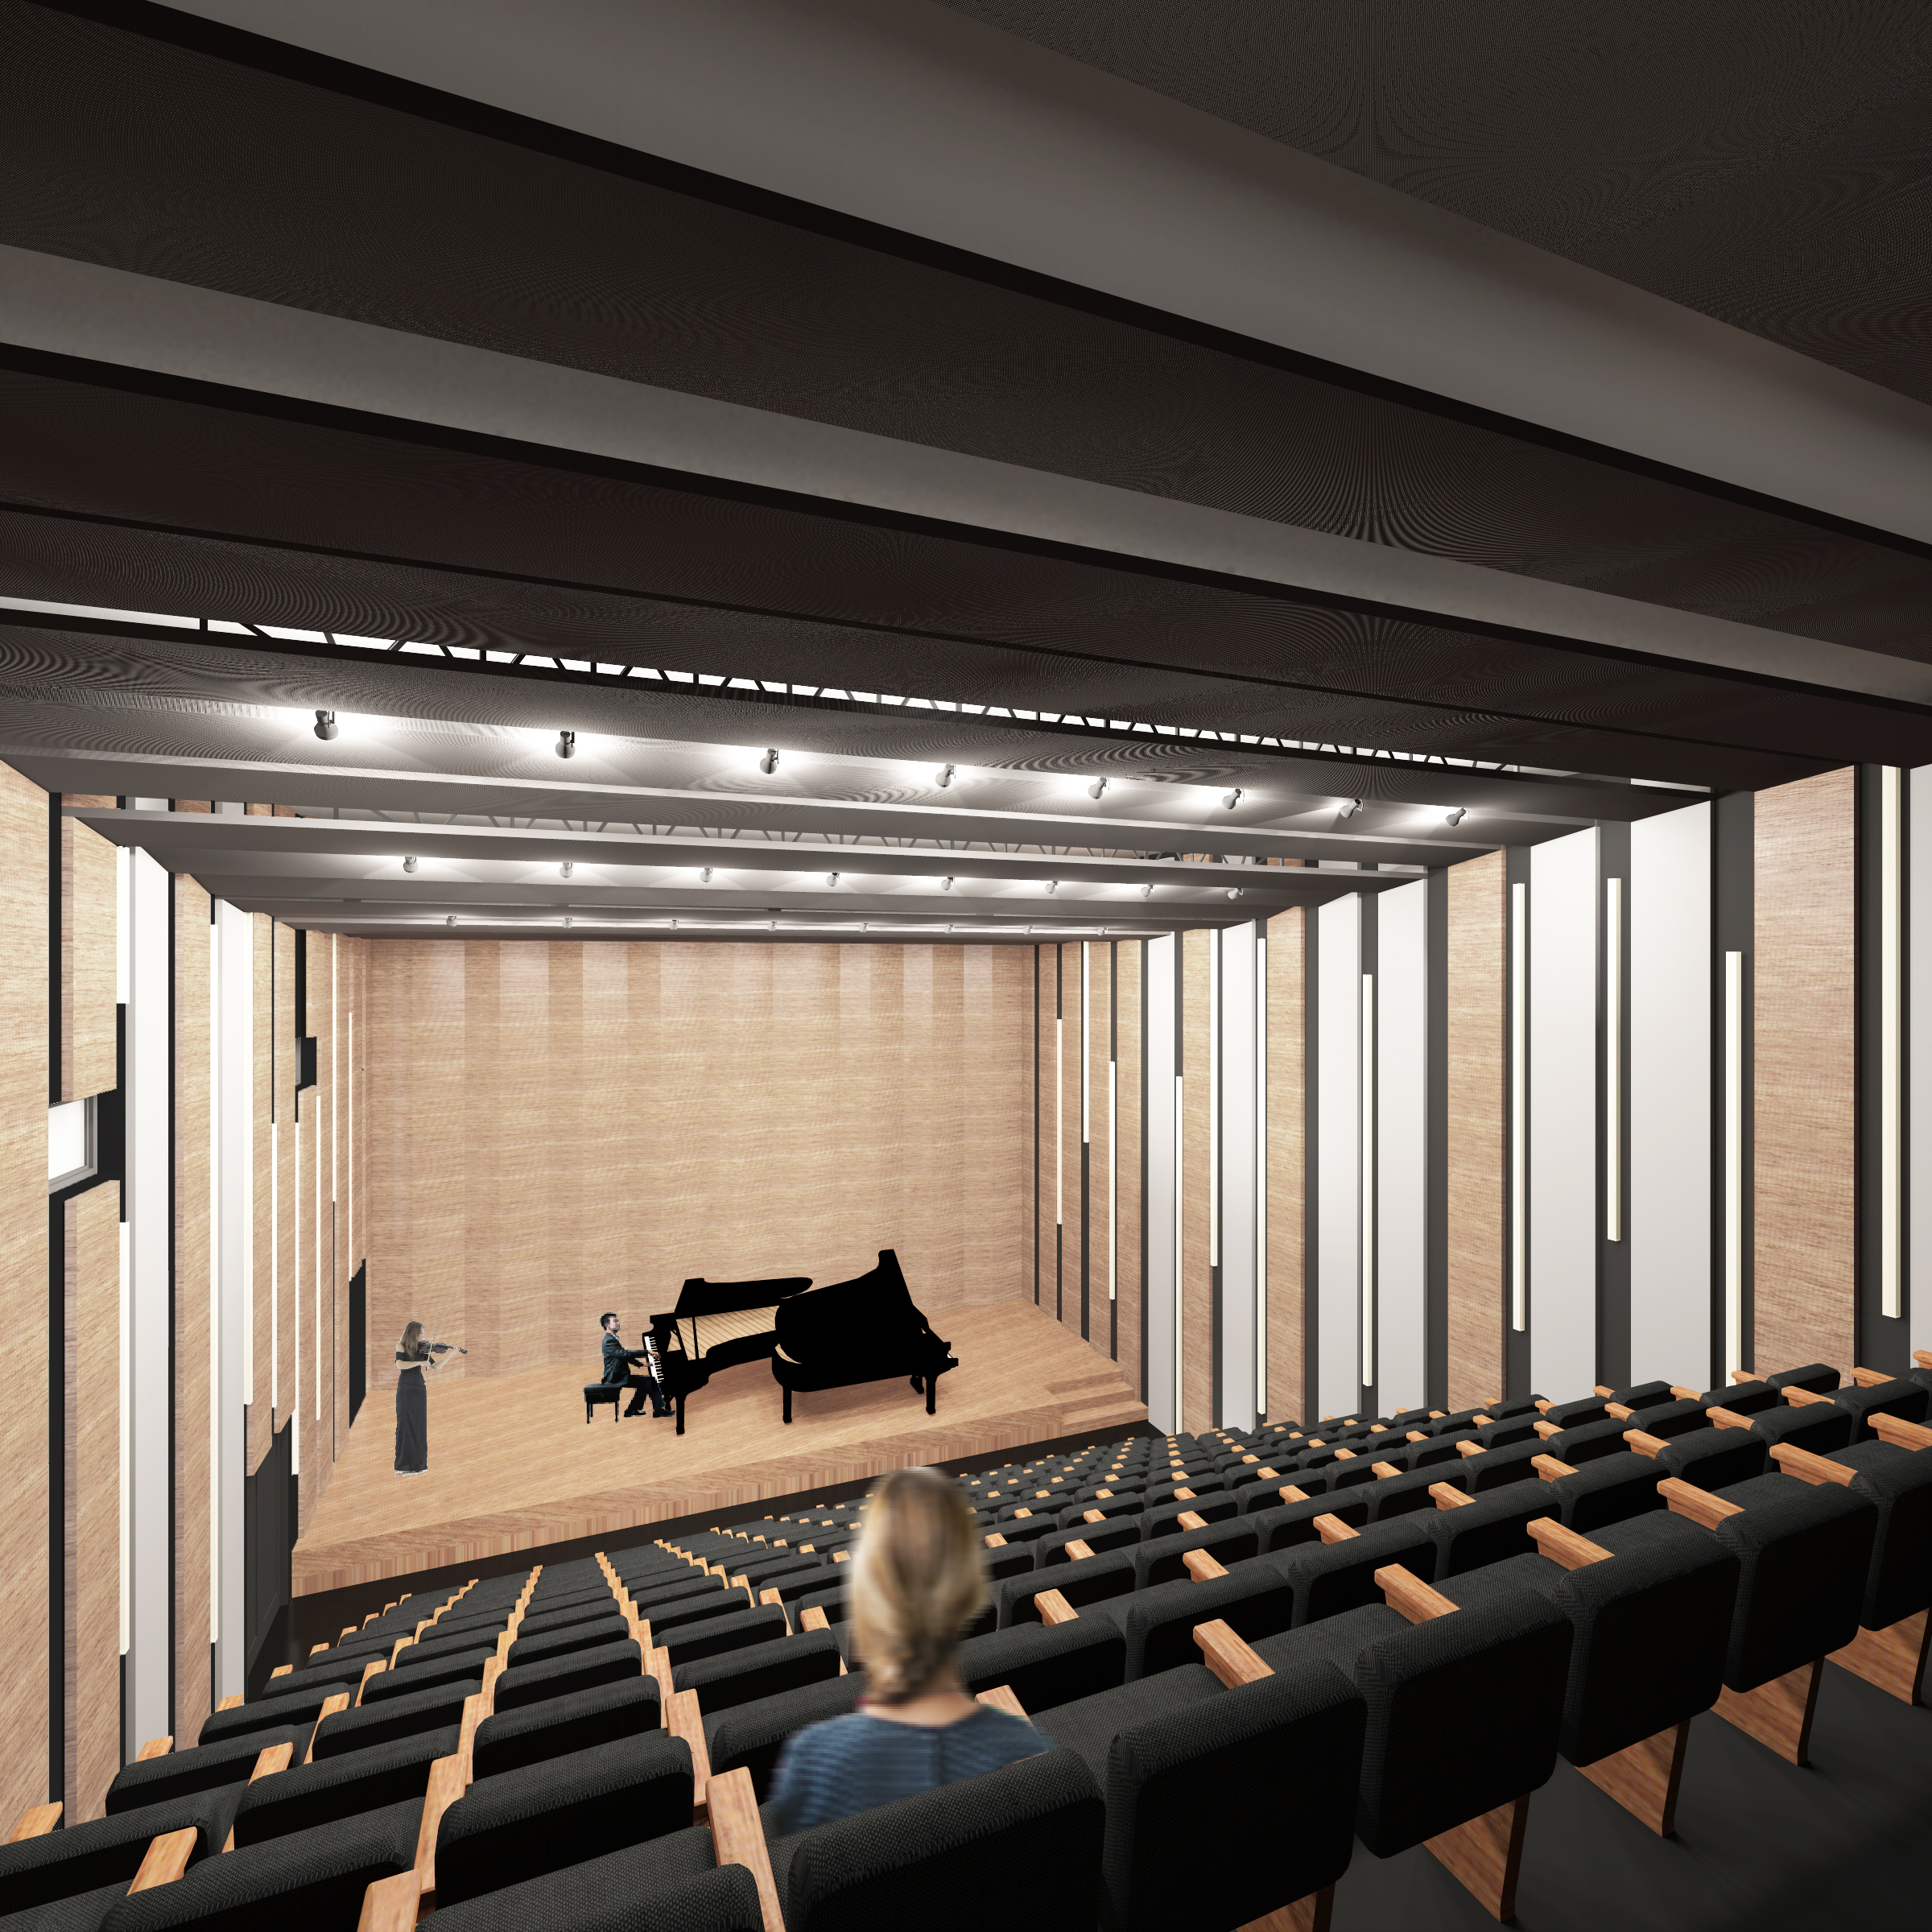 Chopin Music Center, concert hall, pianist with violinist, view from an angle